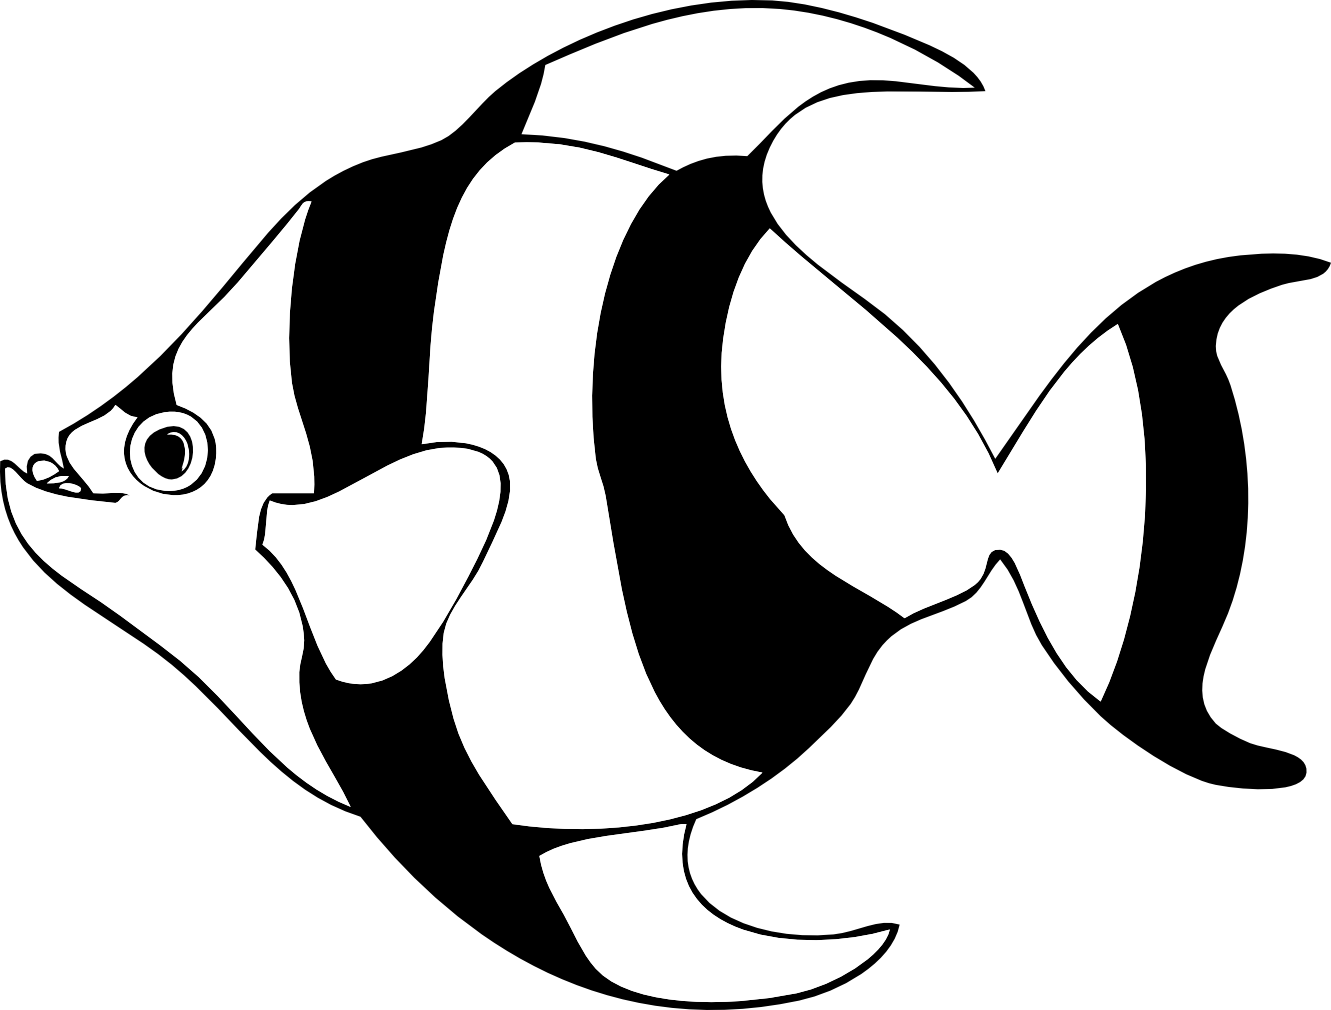 Free fish clipart black and white image download School Black And White Clipart | Free download best School Black And ... image download